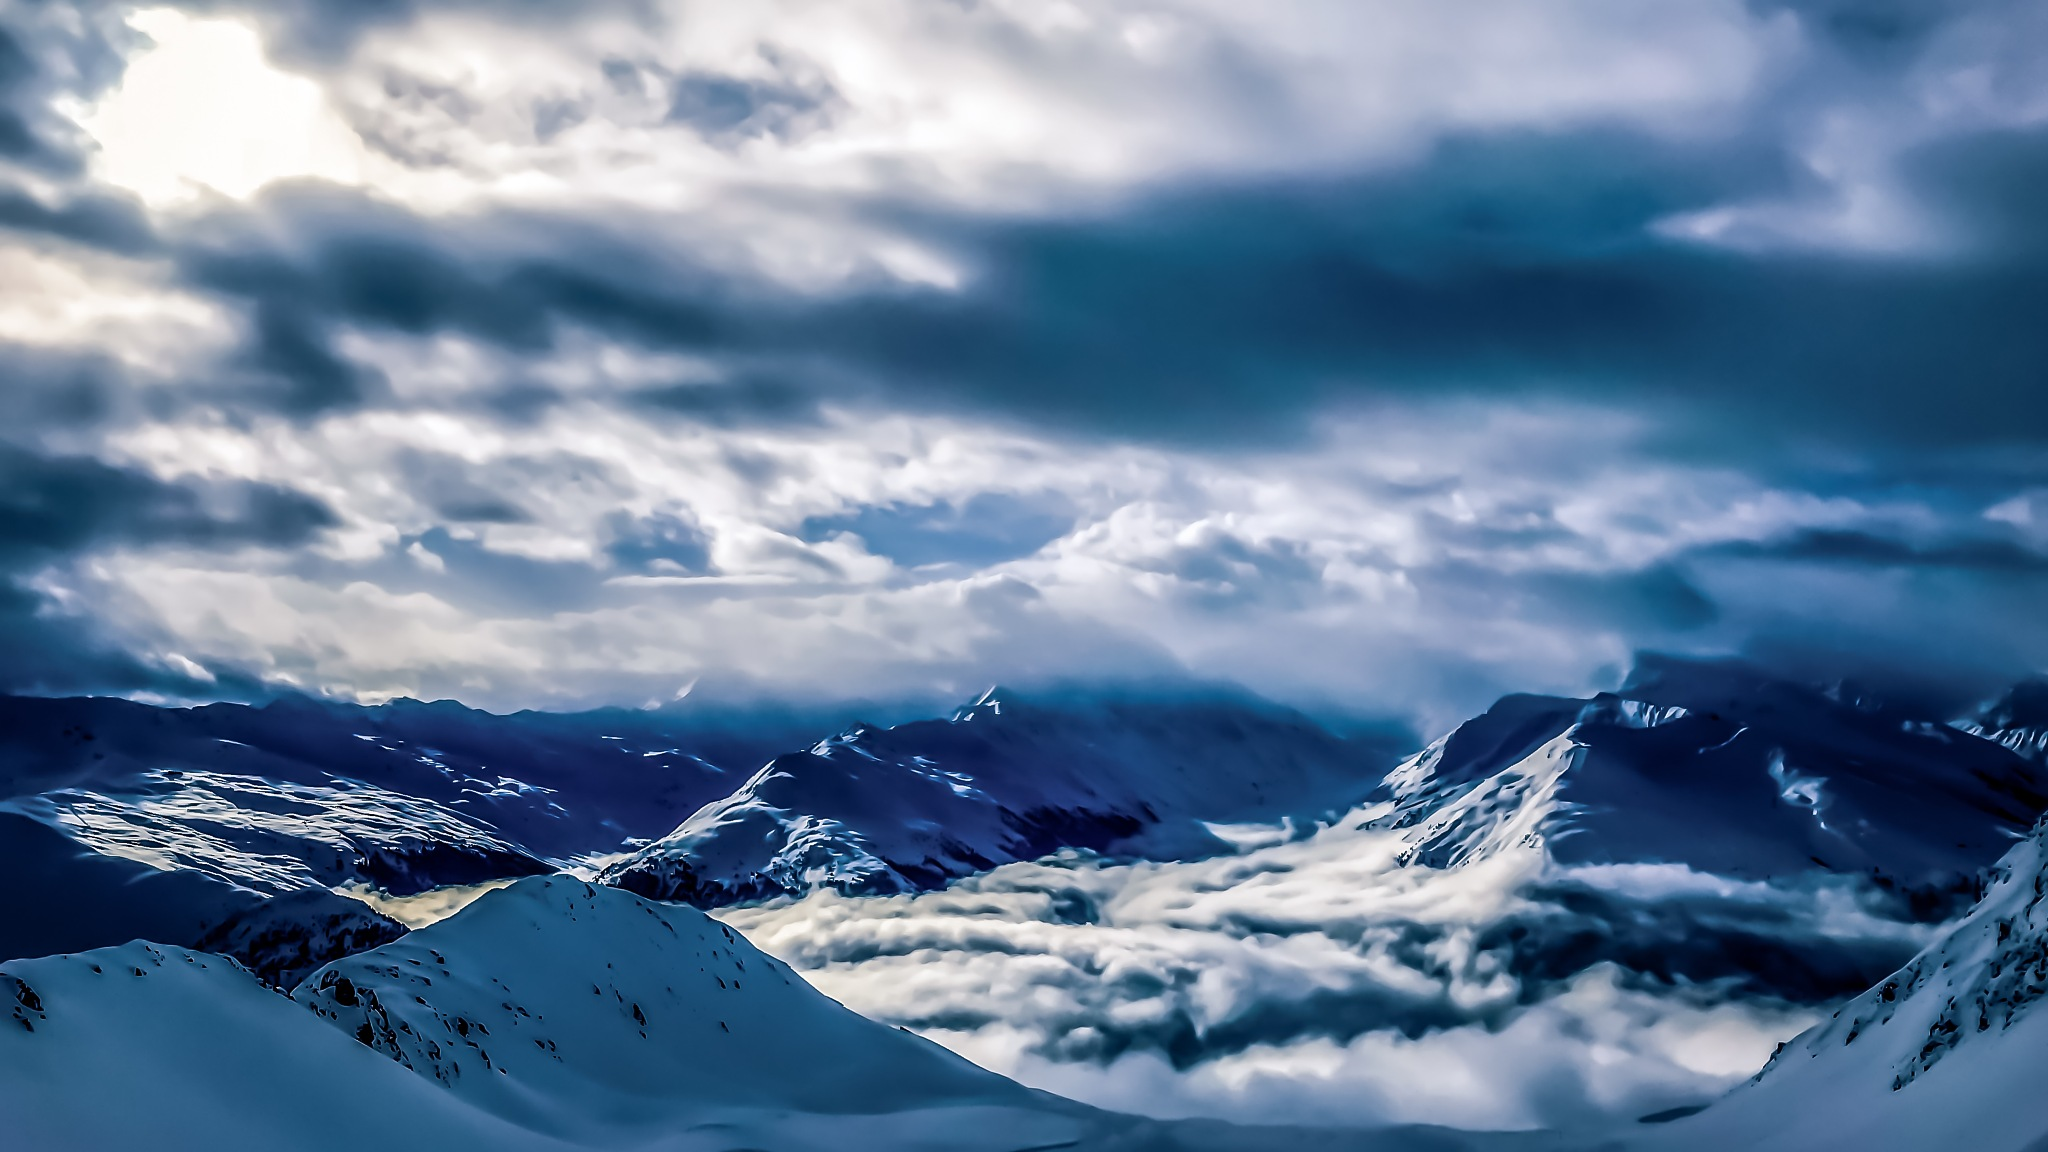 Stunning Mountain View by Andreas Thomas